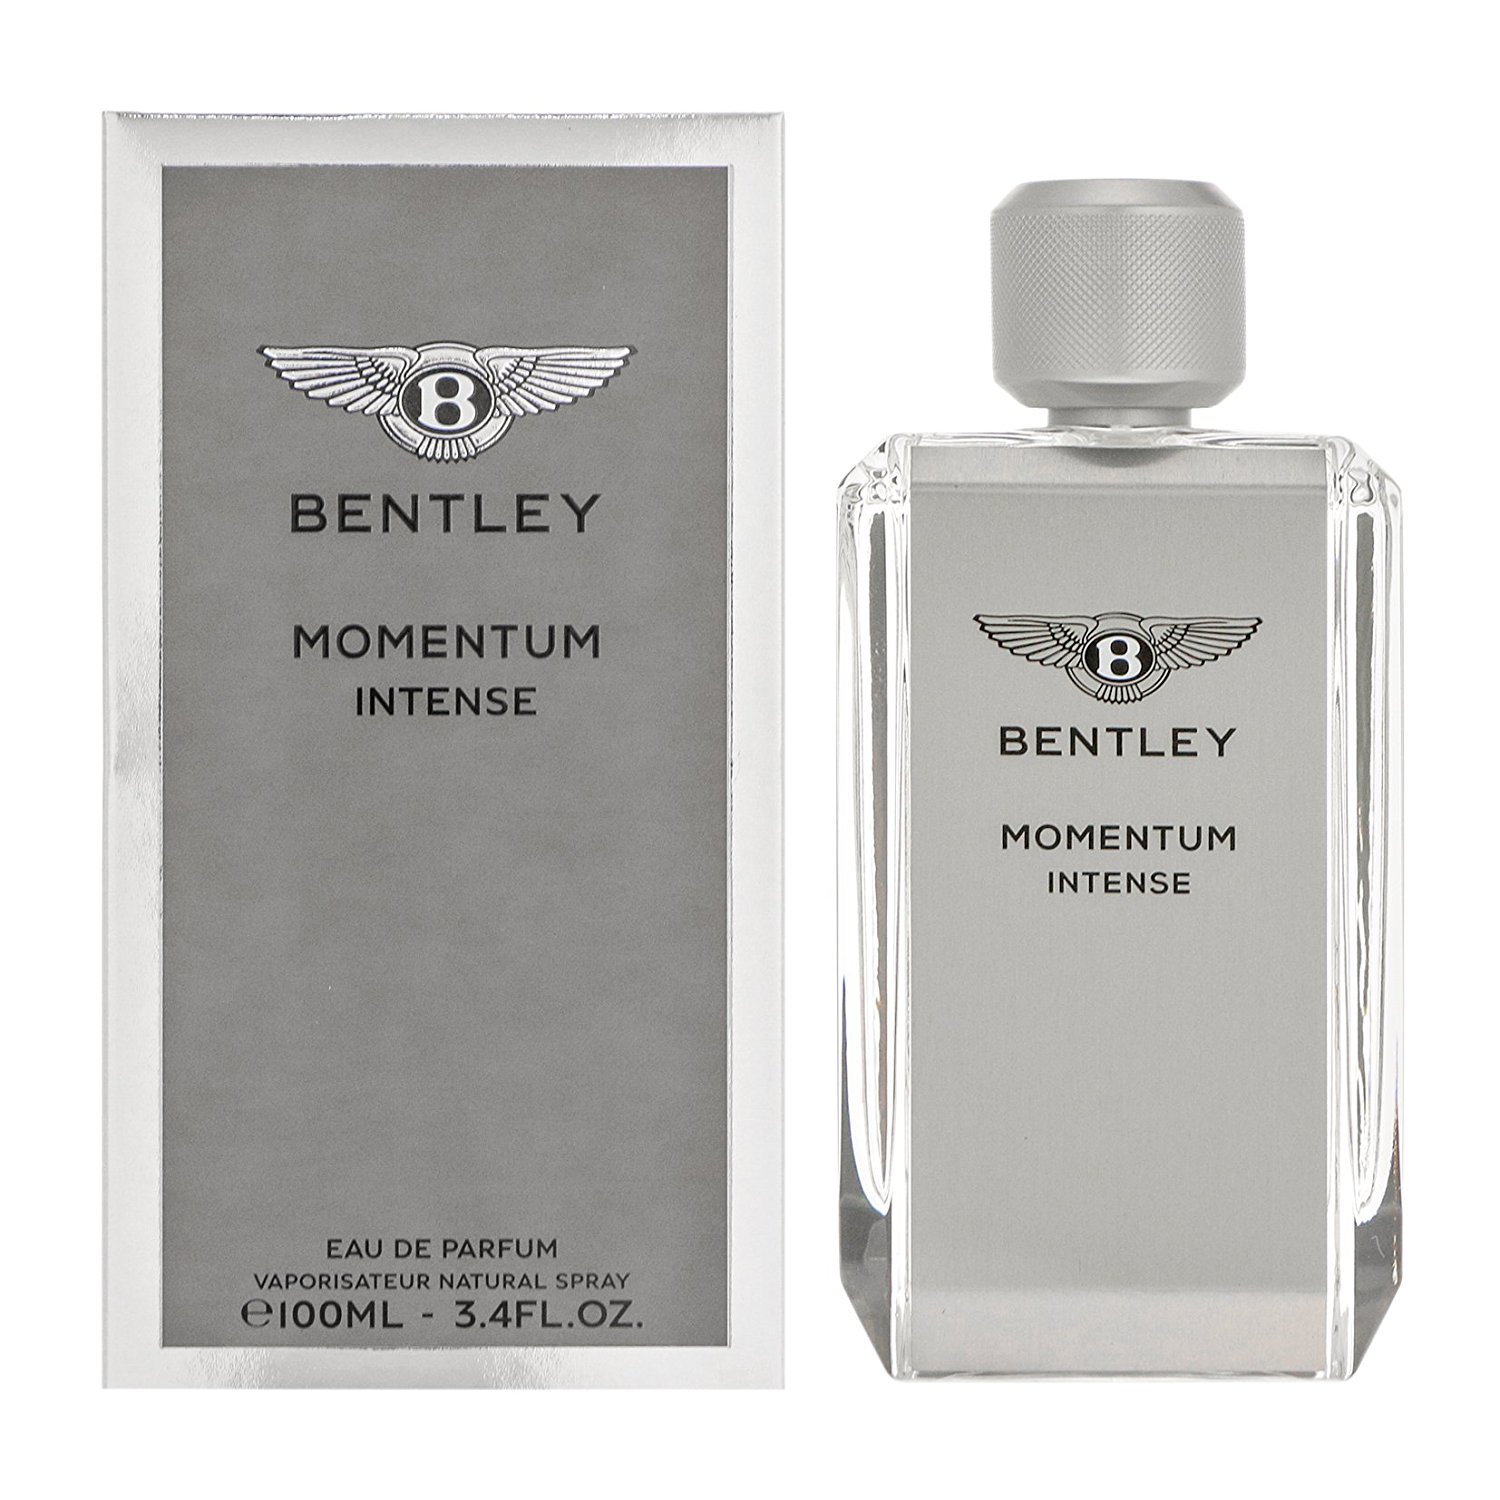 Bentley Momentum Intense Bangladesh